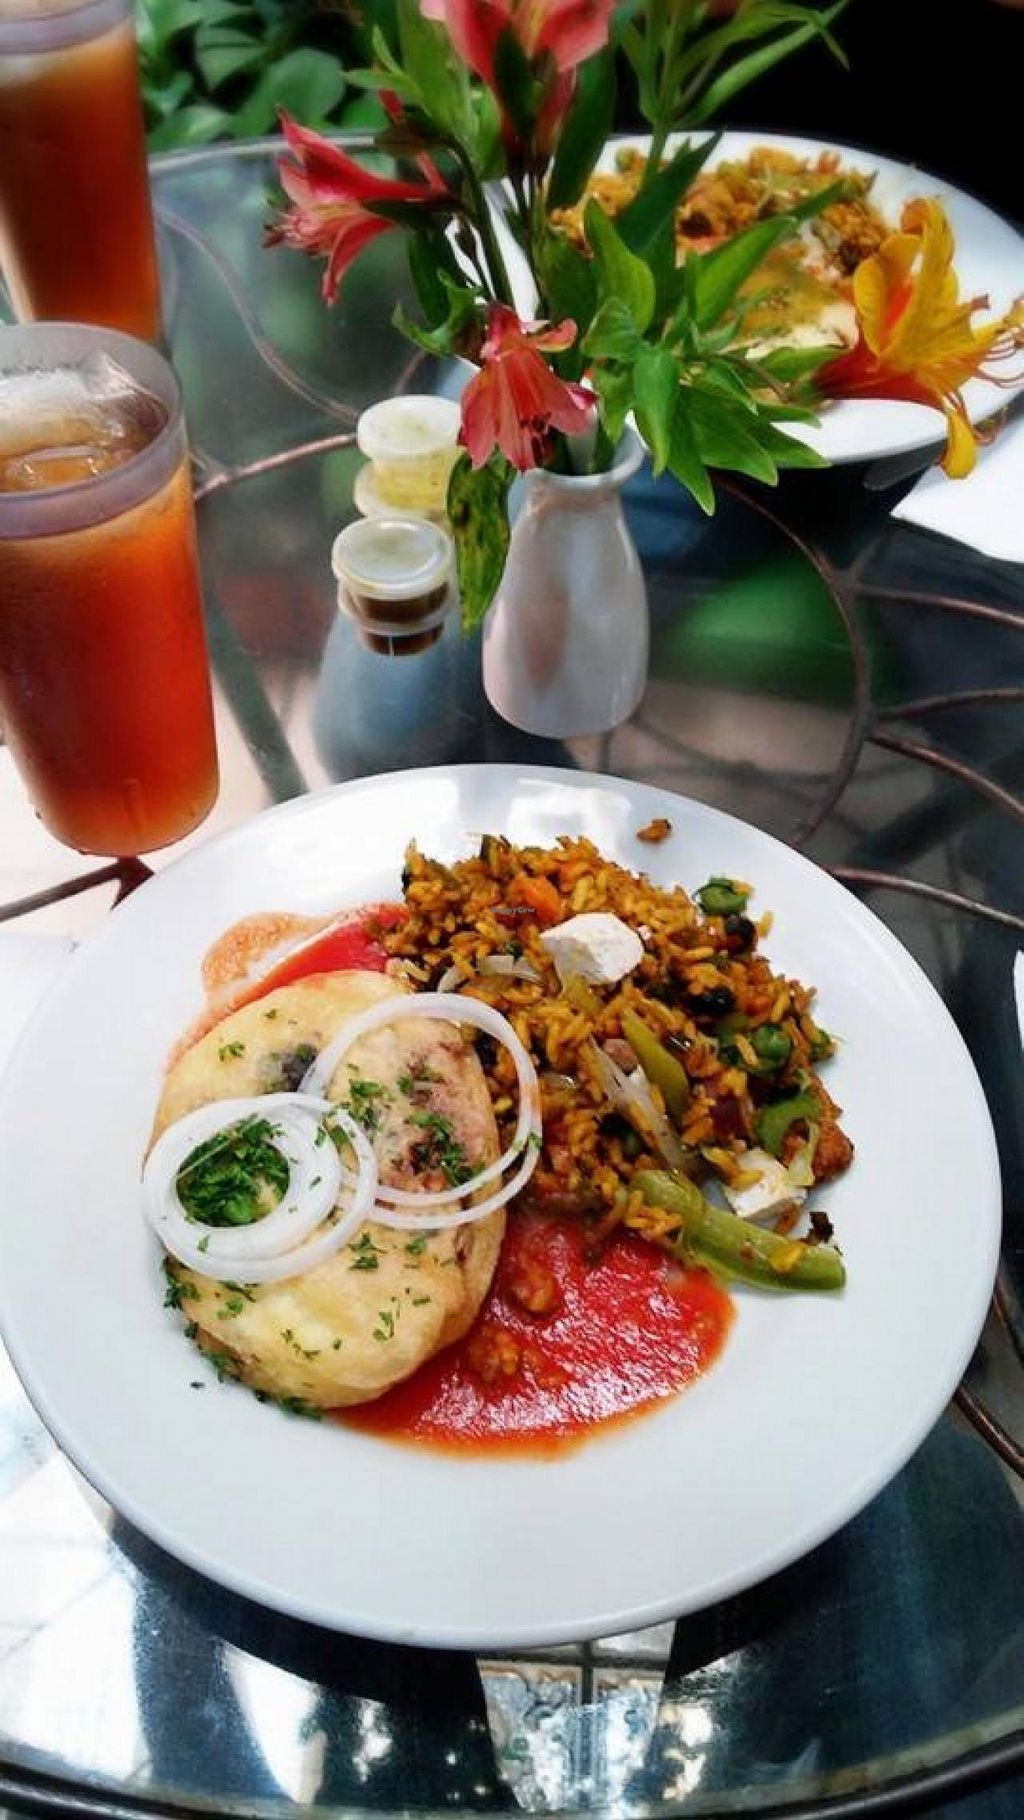 """Photo of Rey Sol  by <a href=""""/members/profile/paxitus"""">paxitus</a> <br/>✔Vegetarian Paella with soy sausage ✔Chile Relleno ✔Cold chamomile tea. Rey Sol Restaurant, the best place to eat healthy. 100% recommended <br/> August 27, 2014  - <a href='/contact/abuse/image/1414/78367'>Report</a>"""